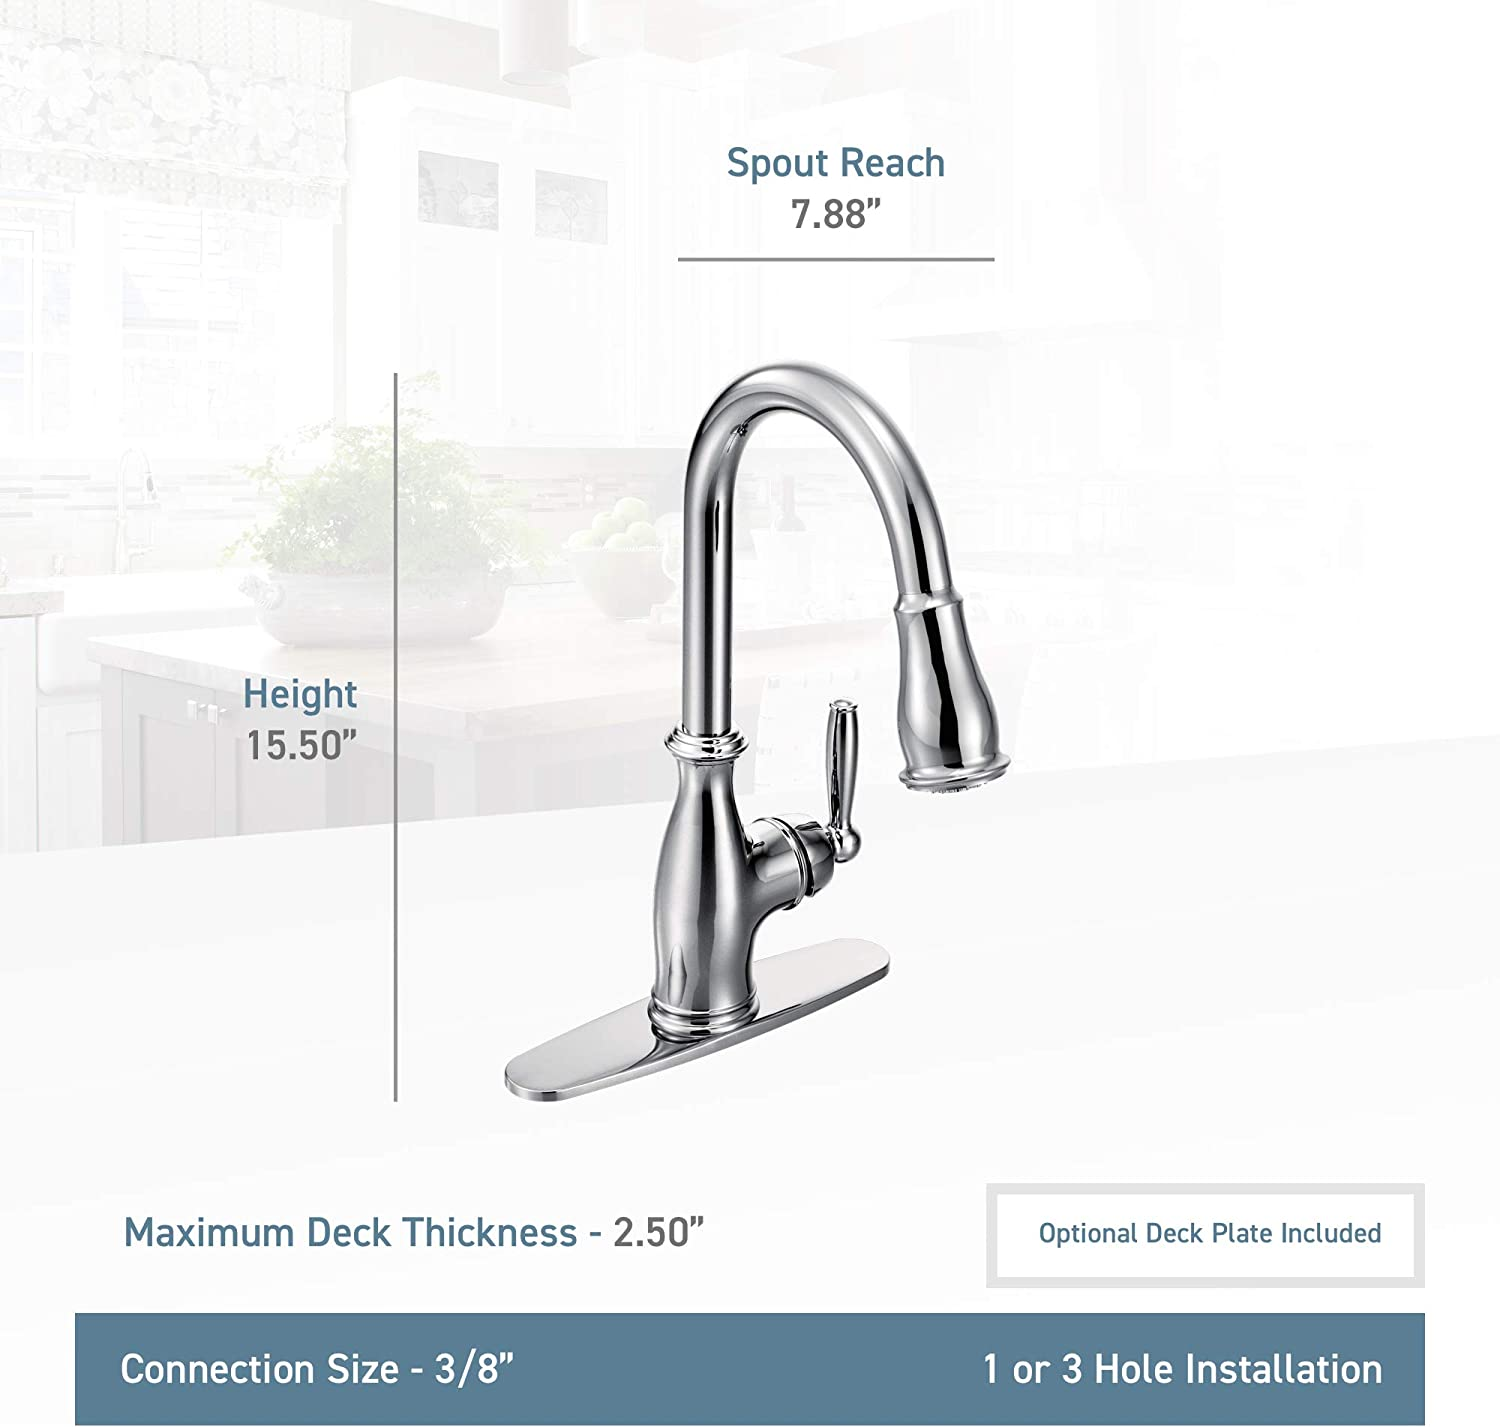 Moen 7185SRS Brantford One-Handle Pulldown Kitchen Faucet Featuring Power Boost and Reflex, Spot Resist Stainless - Bathroom Hardware -